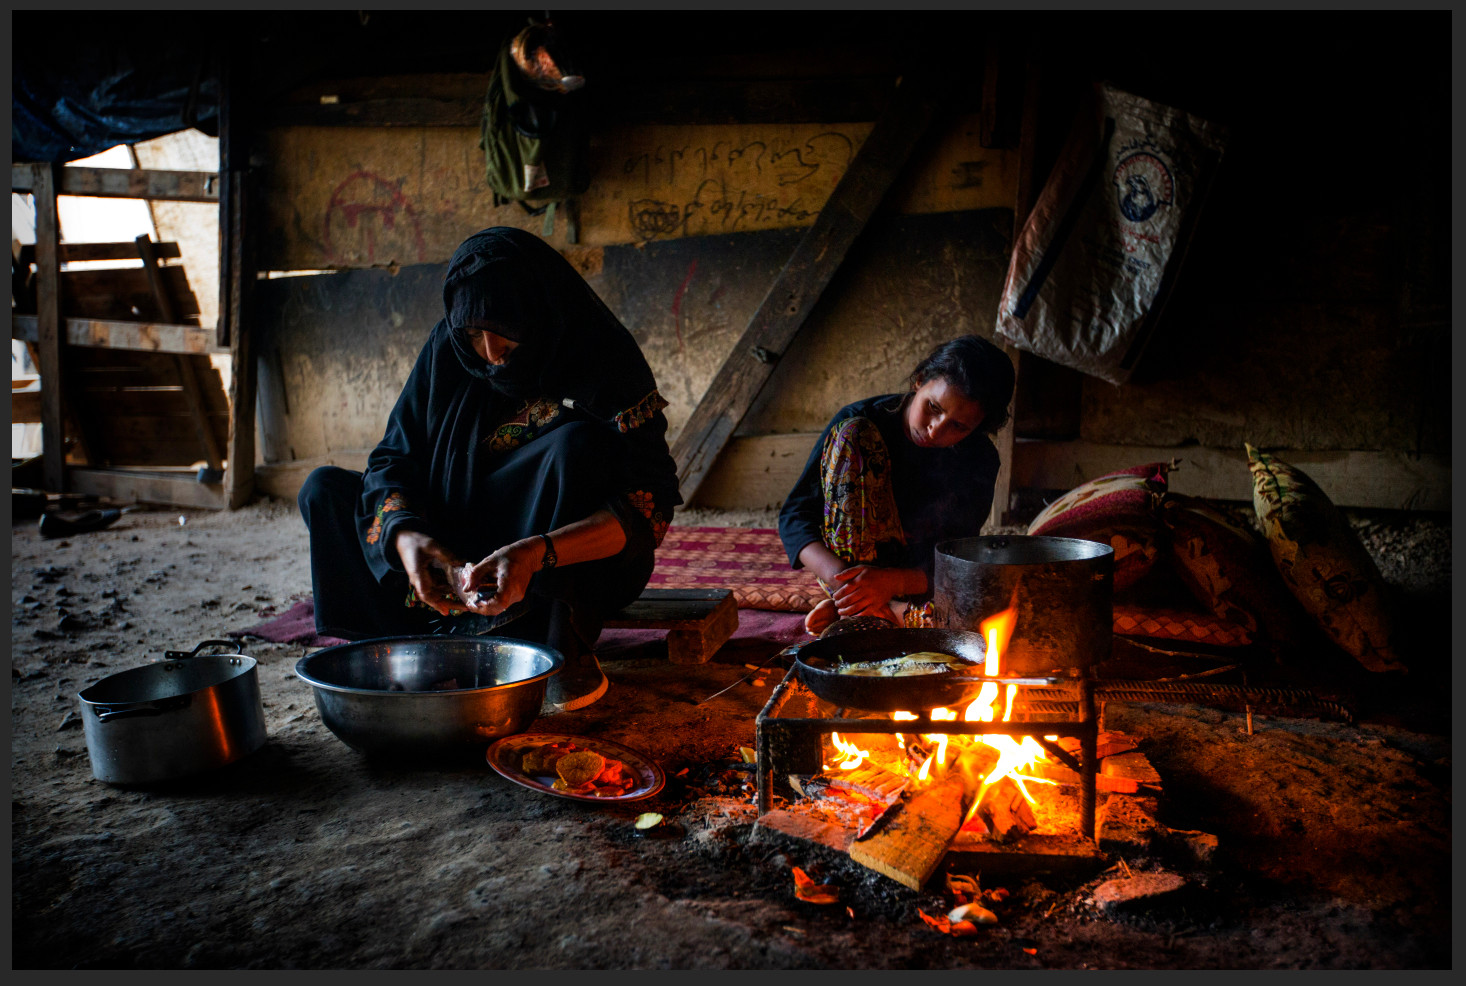 Nasrin looks on as her mother, Sara Dahouk, prepares a meal for the family in the tent-like structure where they live.